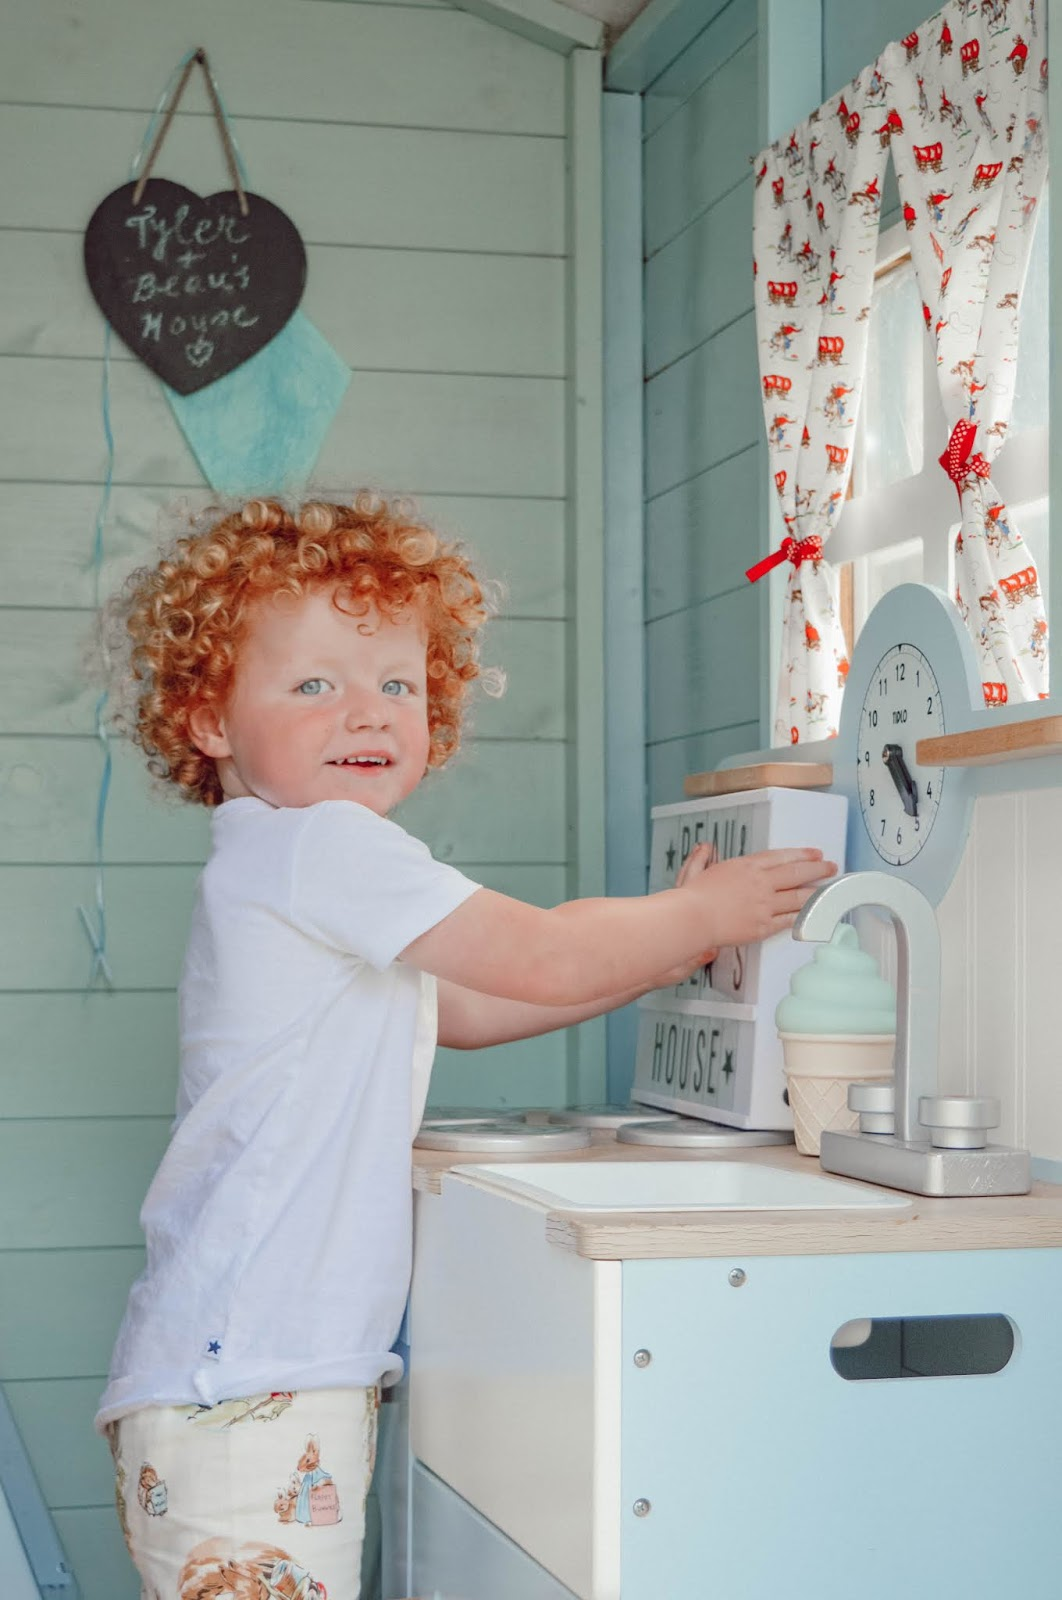 5 Ways To Make Your Home More About the Kids ♥